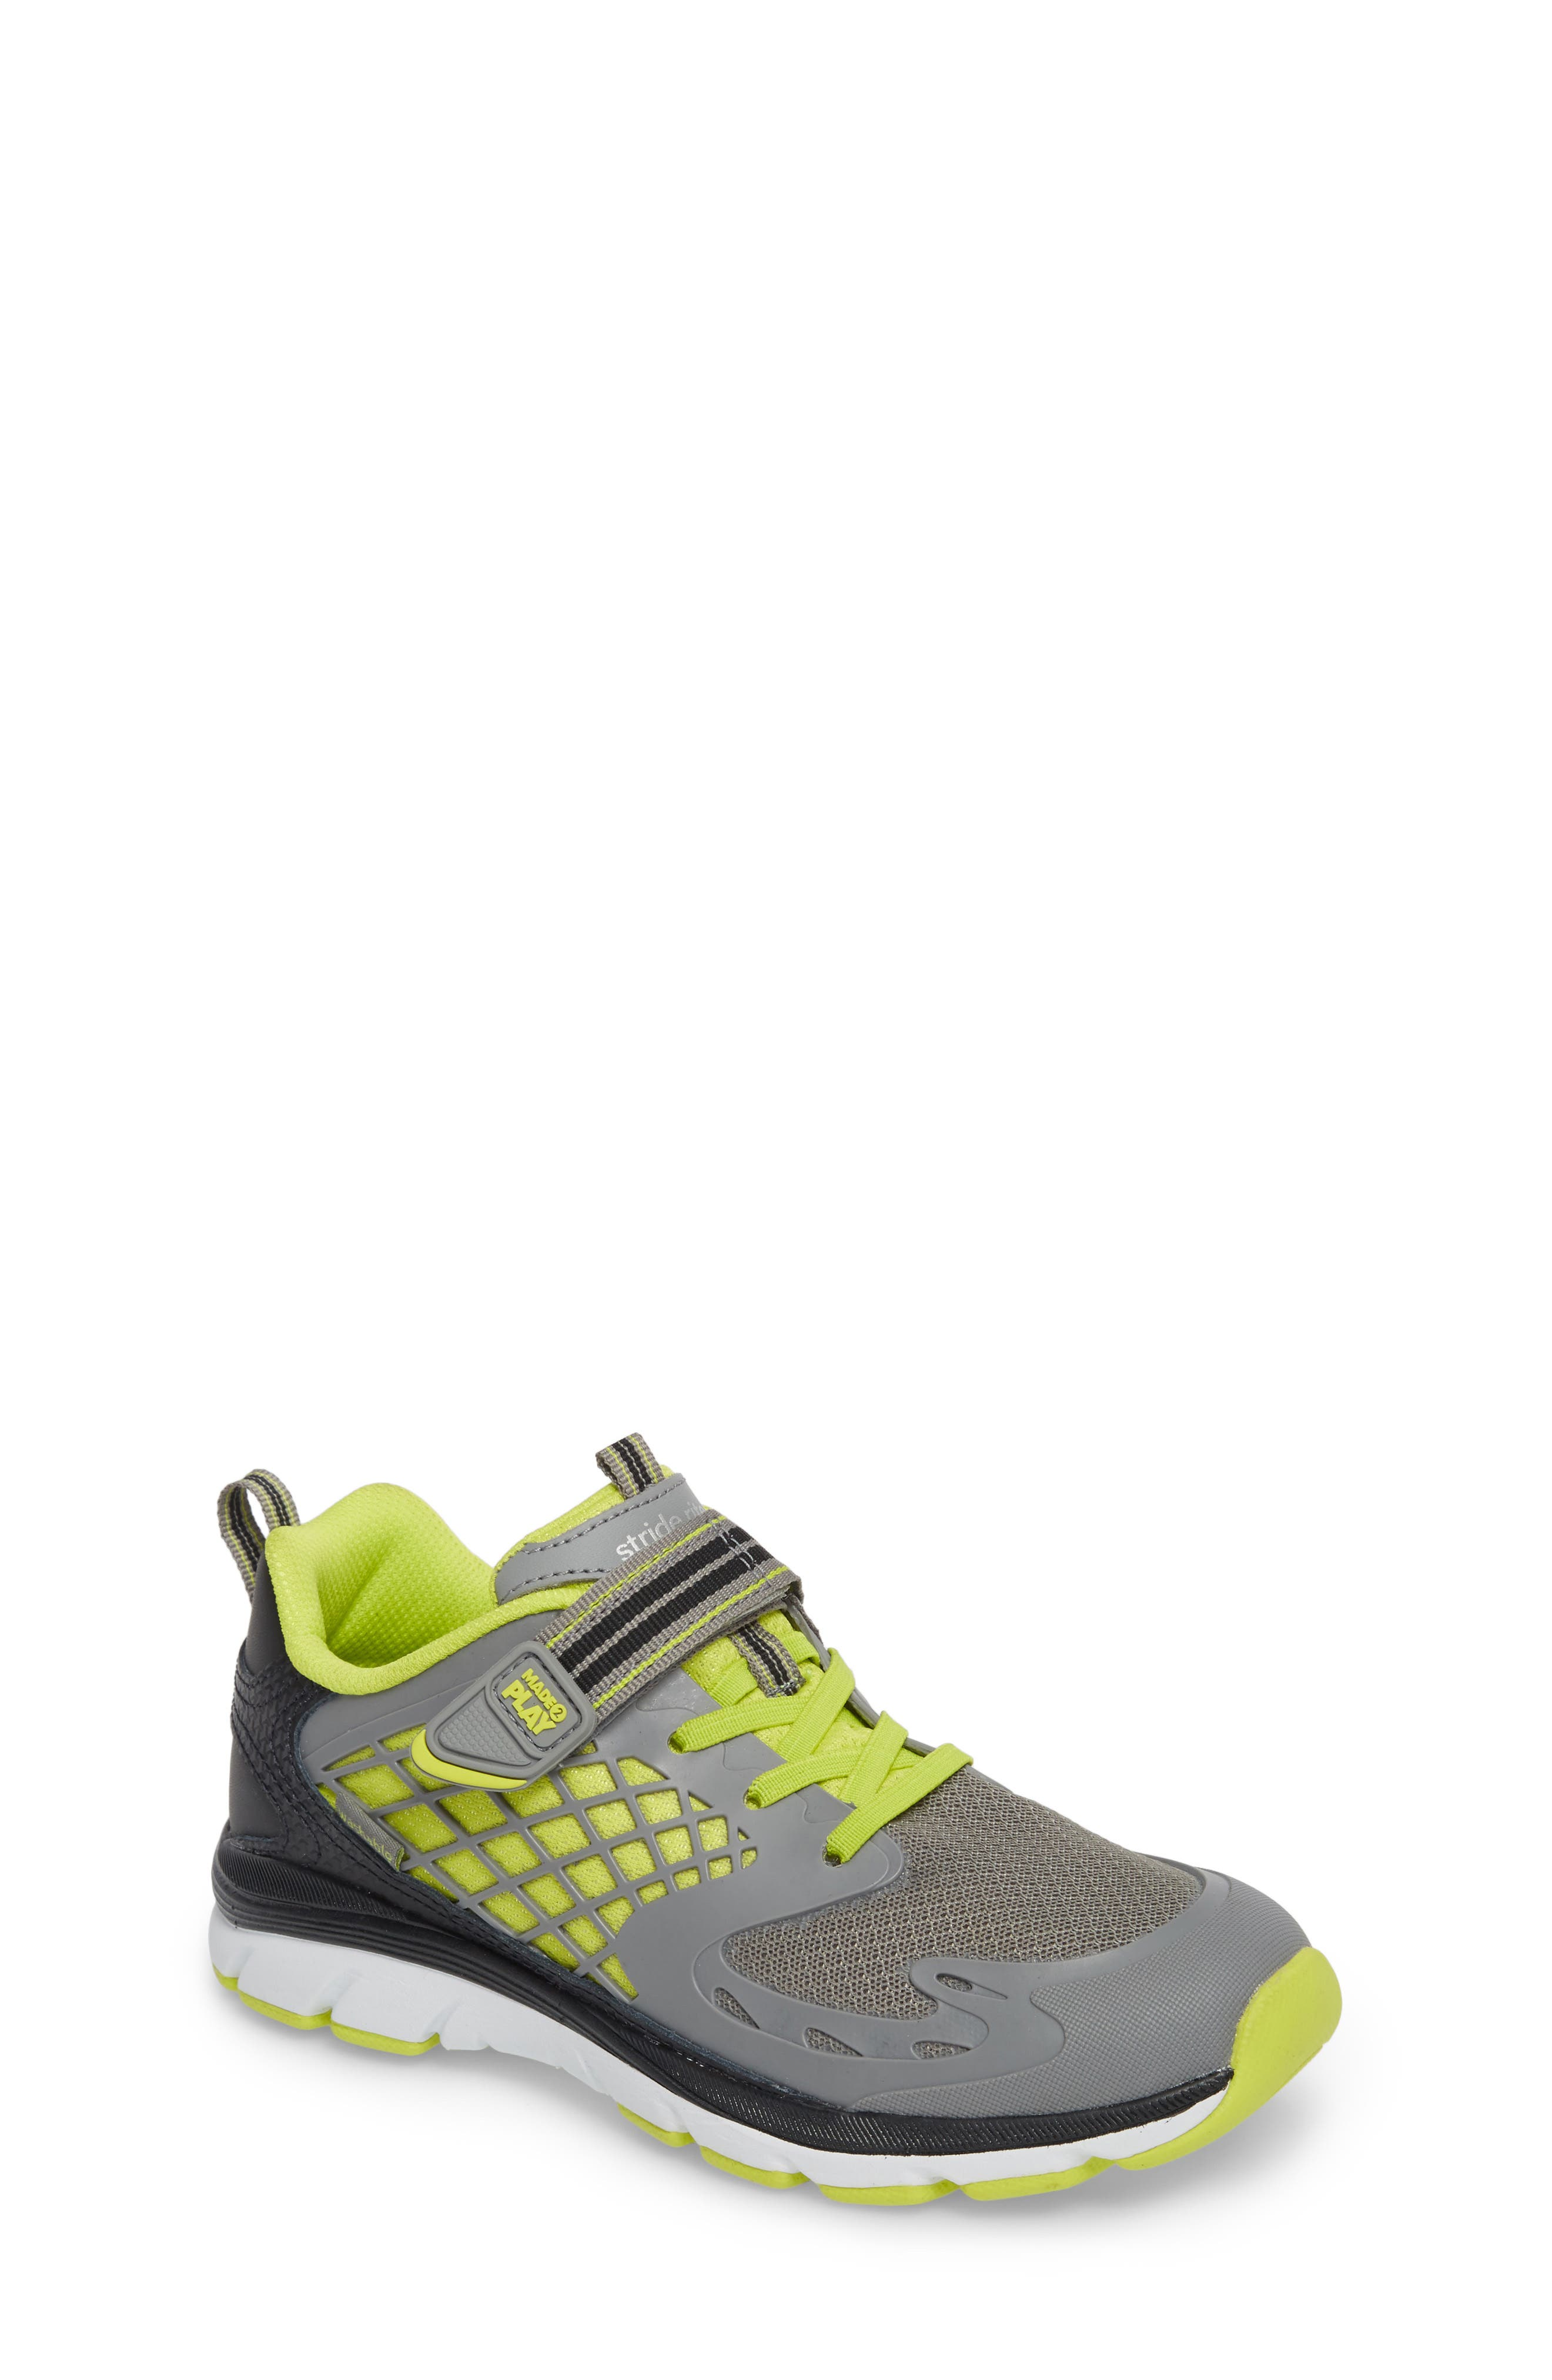 Made 2 Play Breccen Sneaker,                             Main thumbnail 1, color,                             Grey/ Lime Leather/ Textile